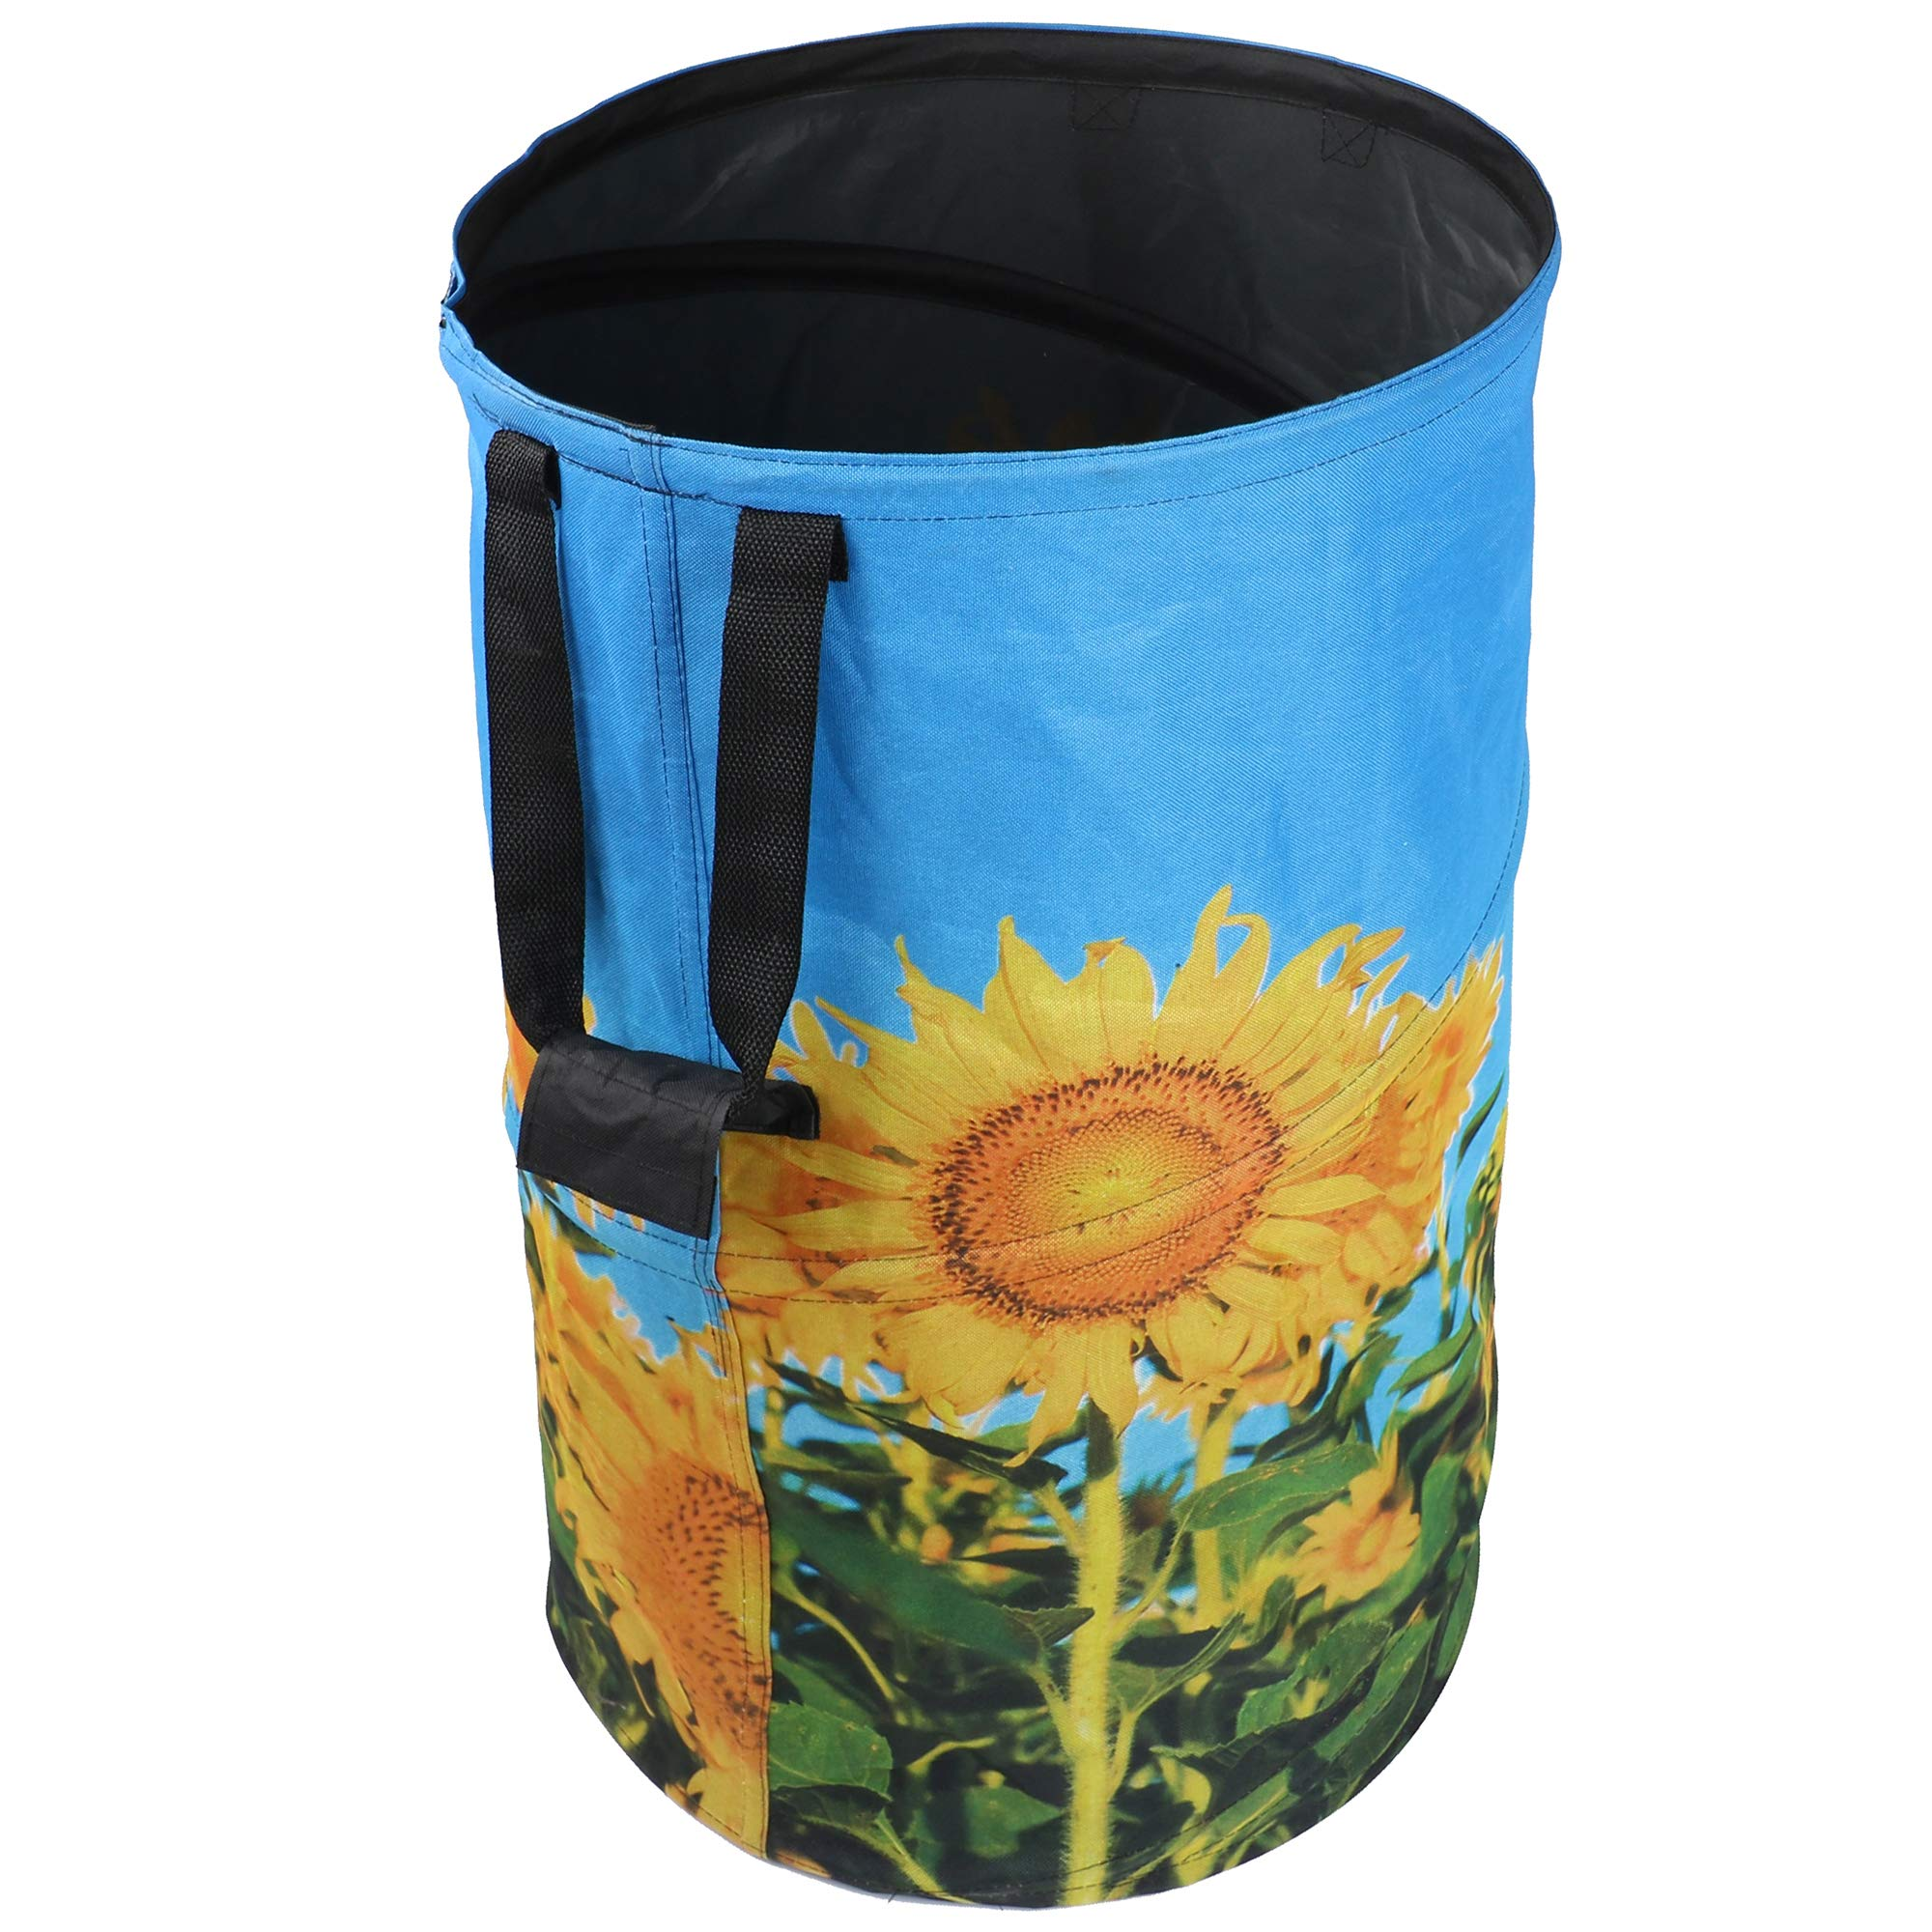 FLORA GUARD 32 Gallon Garden Bag - Reusable Pop-up Gardening Bag, Sun Flower Print Collapsible Canvas Portable Yard Waste Bag by FLORA GUARD